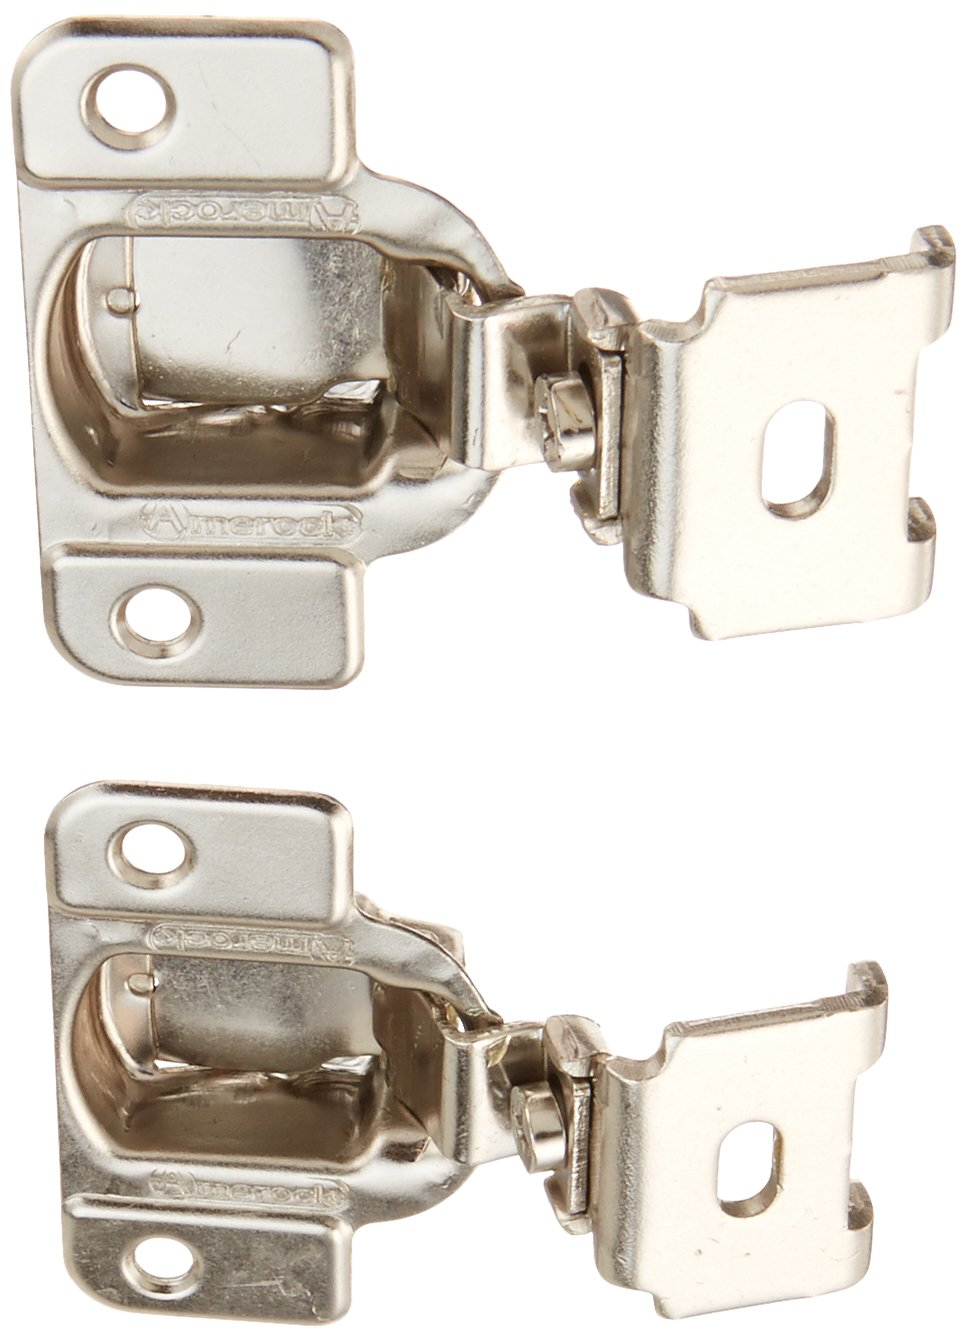 Amerock BP2811C1314 Matrix Concealed Hinge, 1 3/4in(45mm) Hole Pattern Hinge  With 1 1/4in(32mm) Overlay   Nickel (PACK OF 4 + PLEXTOOL BUNDLE)      Amazon. ...